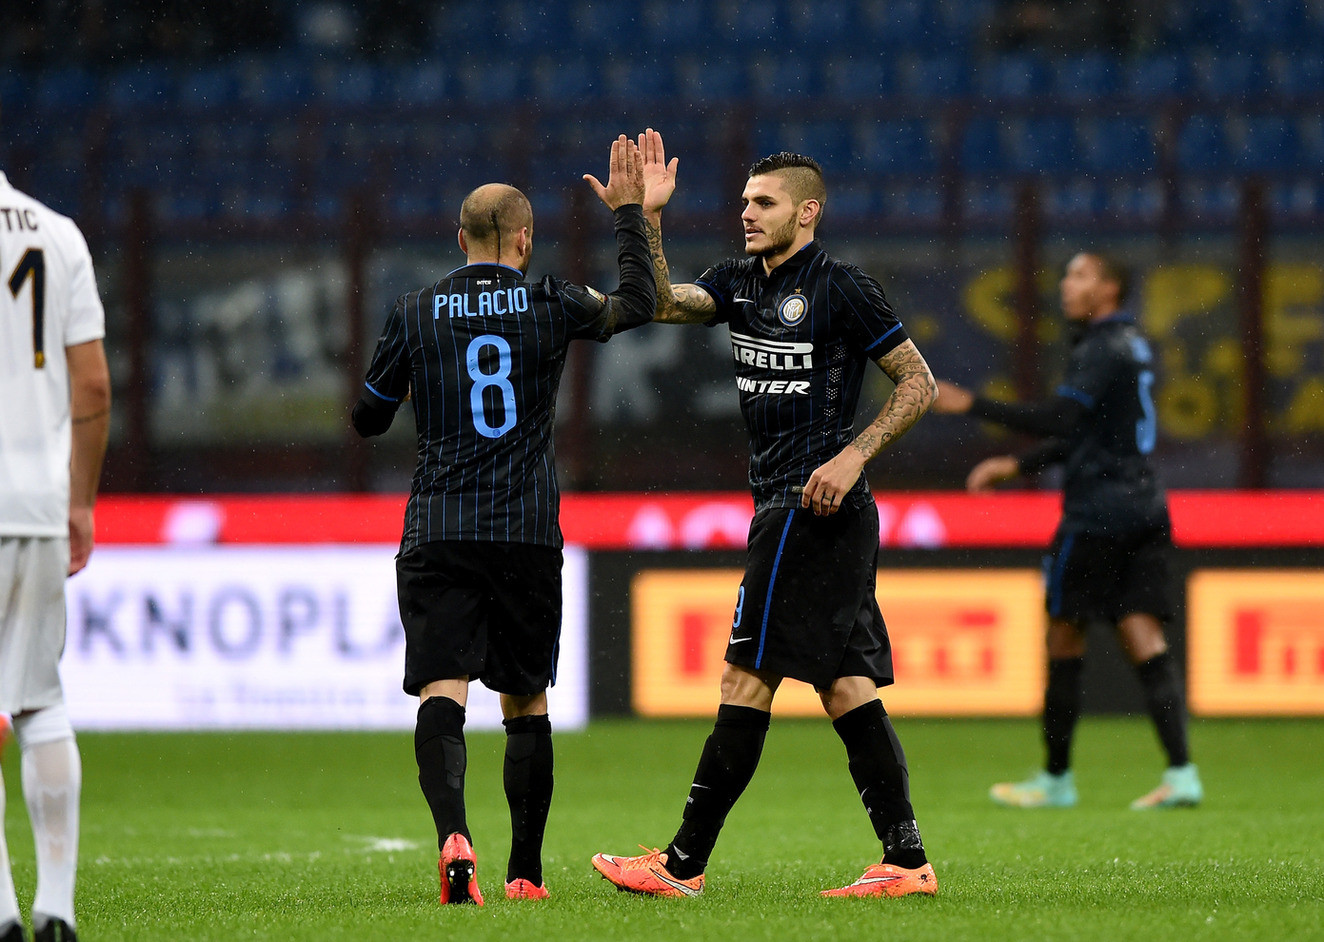 Icardi, Palacio and Osvaldo… Three players playing for two spots against Udi